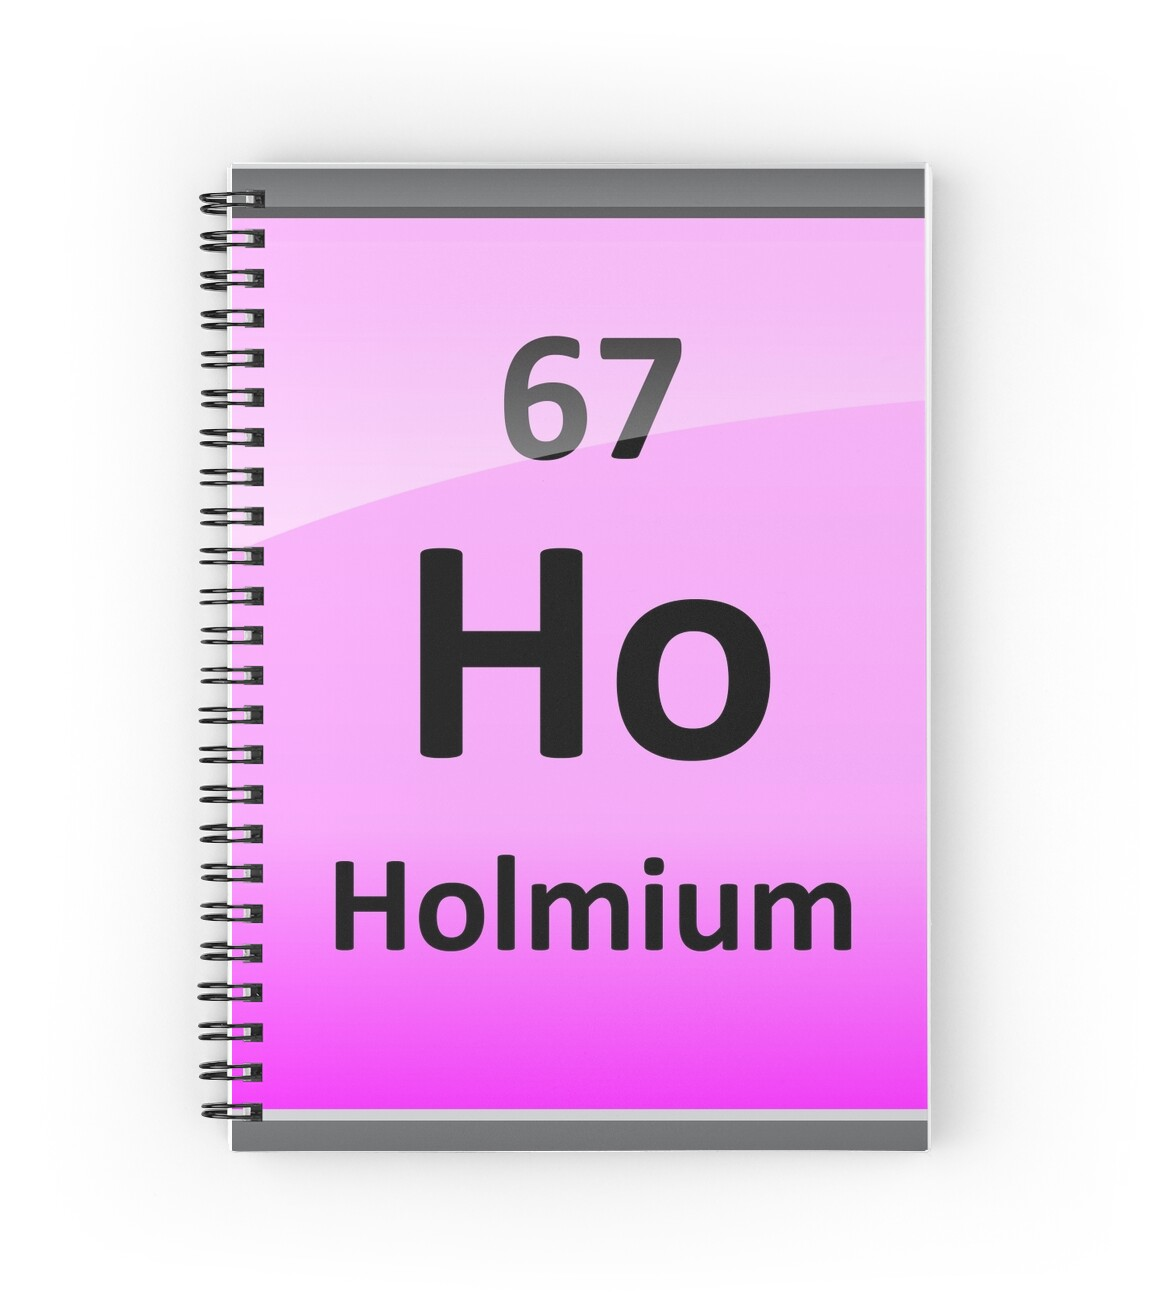 Holmium or ho periodic table element symbol spiral notebooks by holmium or ho periodic table element symbol by sciencenotes gamestrikefo Gallery